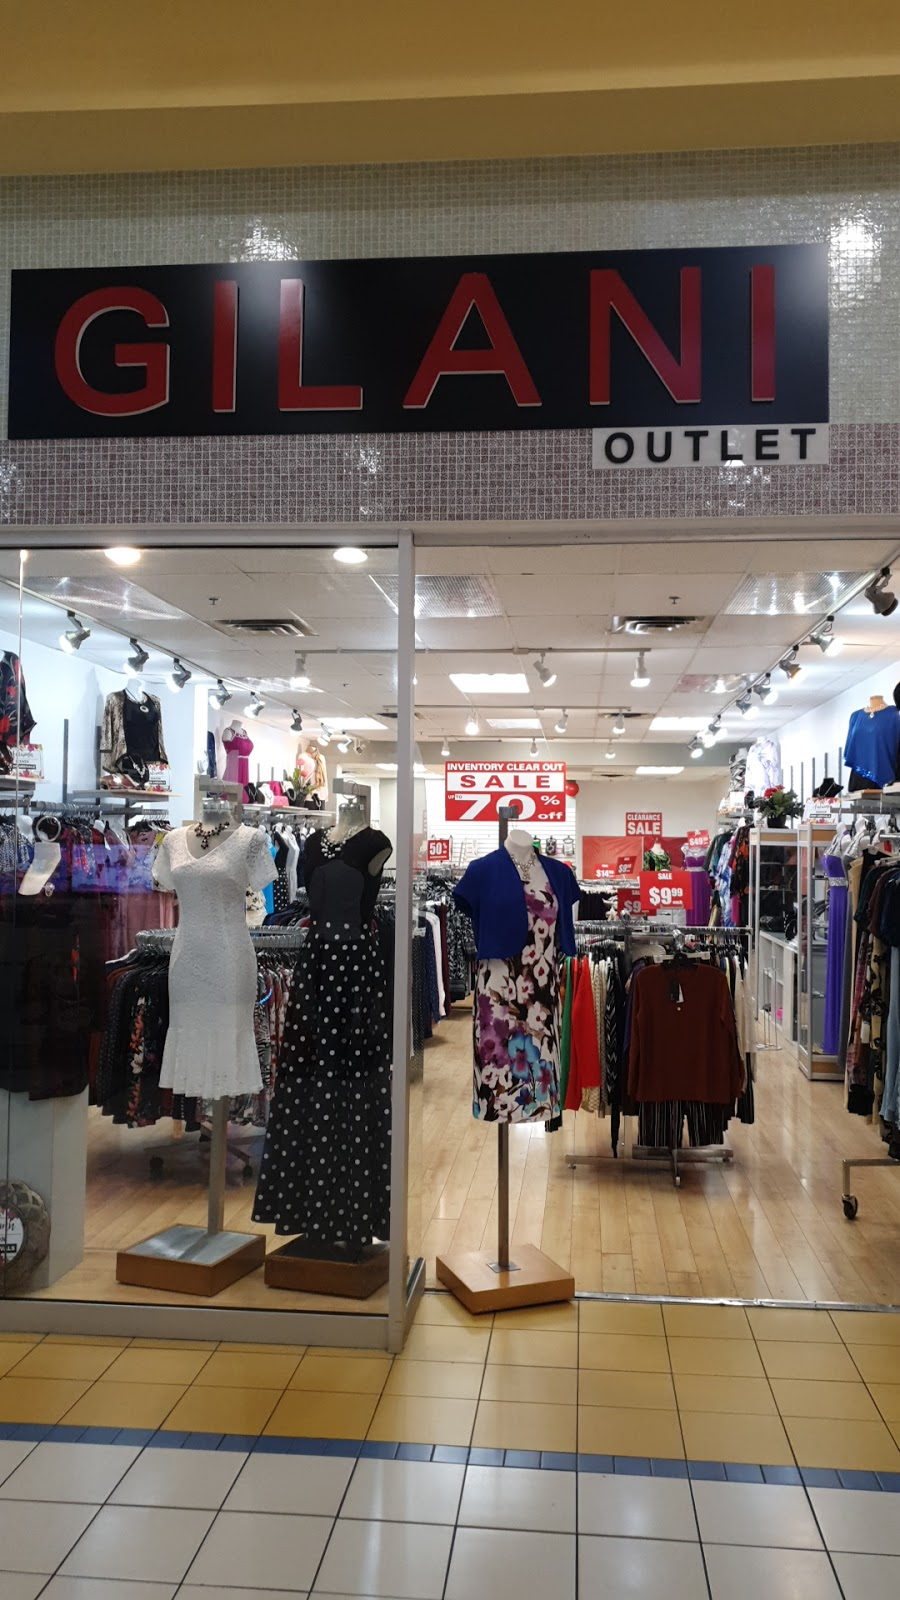 Gilani Outlet | clothing store | 1250 S Service Rd Unit # 11, Mississauga, ON L5E 1V4, Canada | 9059903363 OR +1 905-990-3363